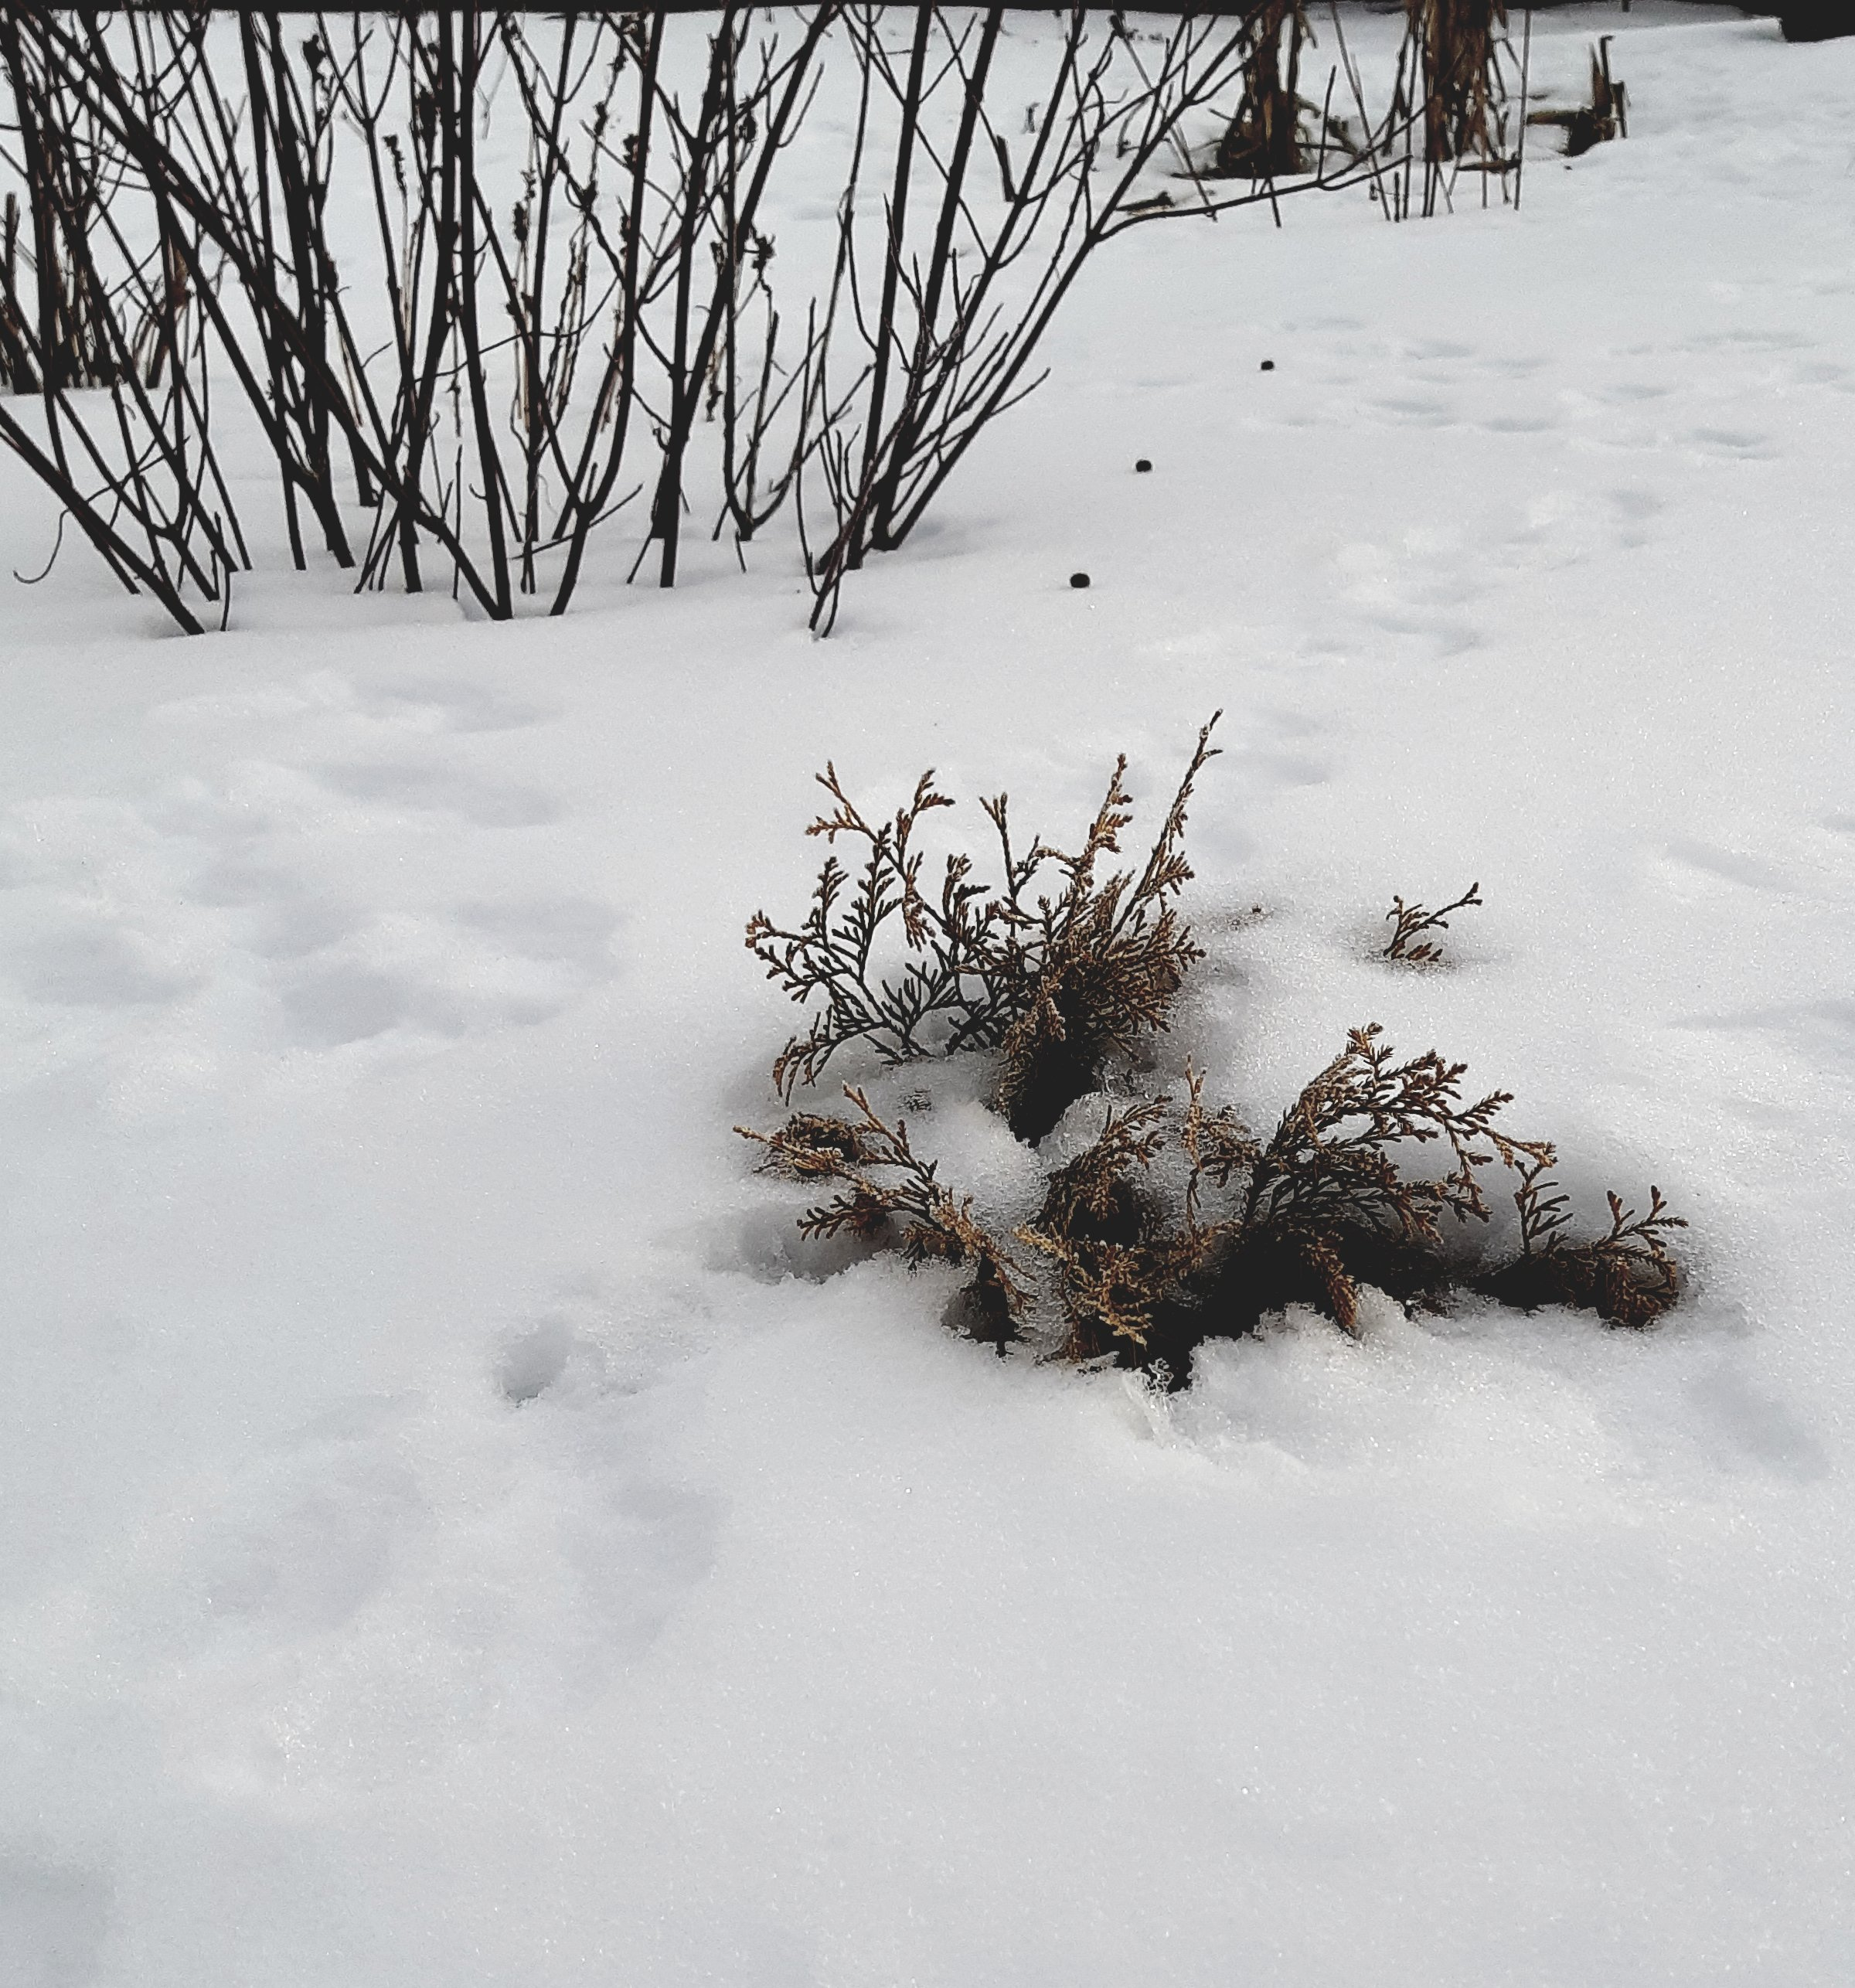 Small cedar in the snow with yellow tinged foliage